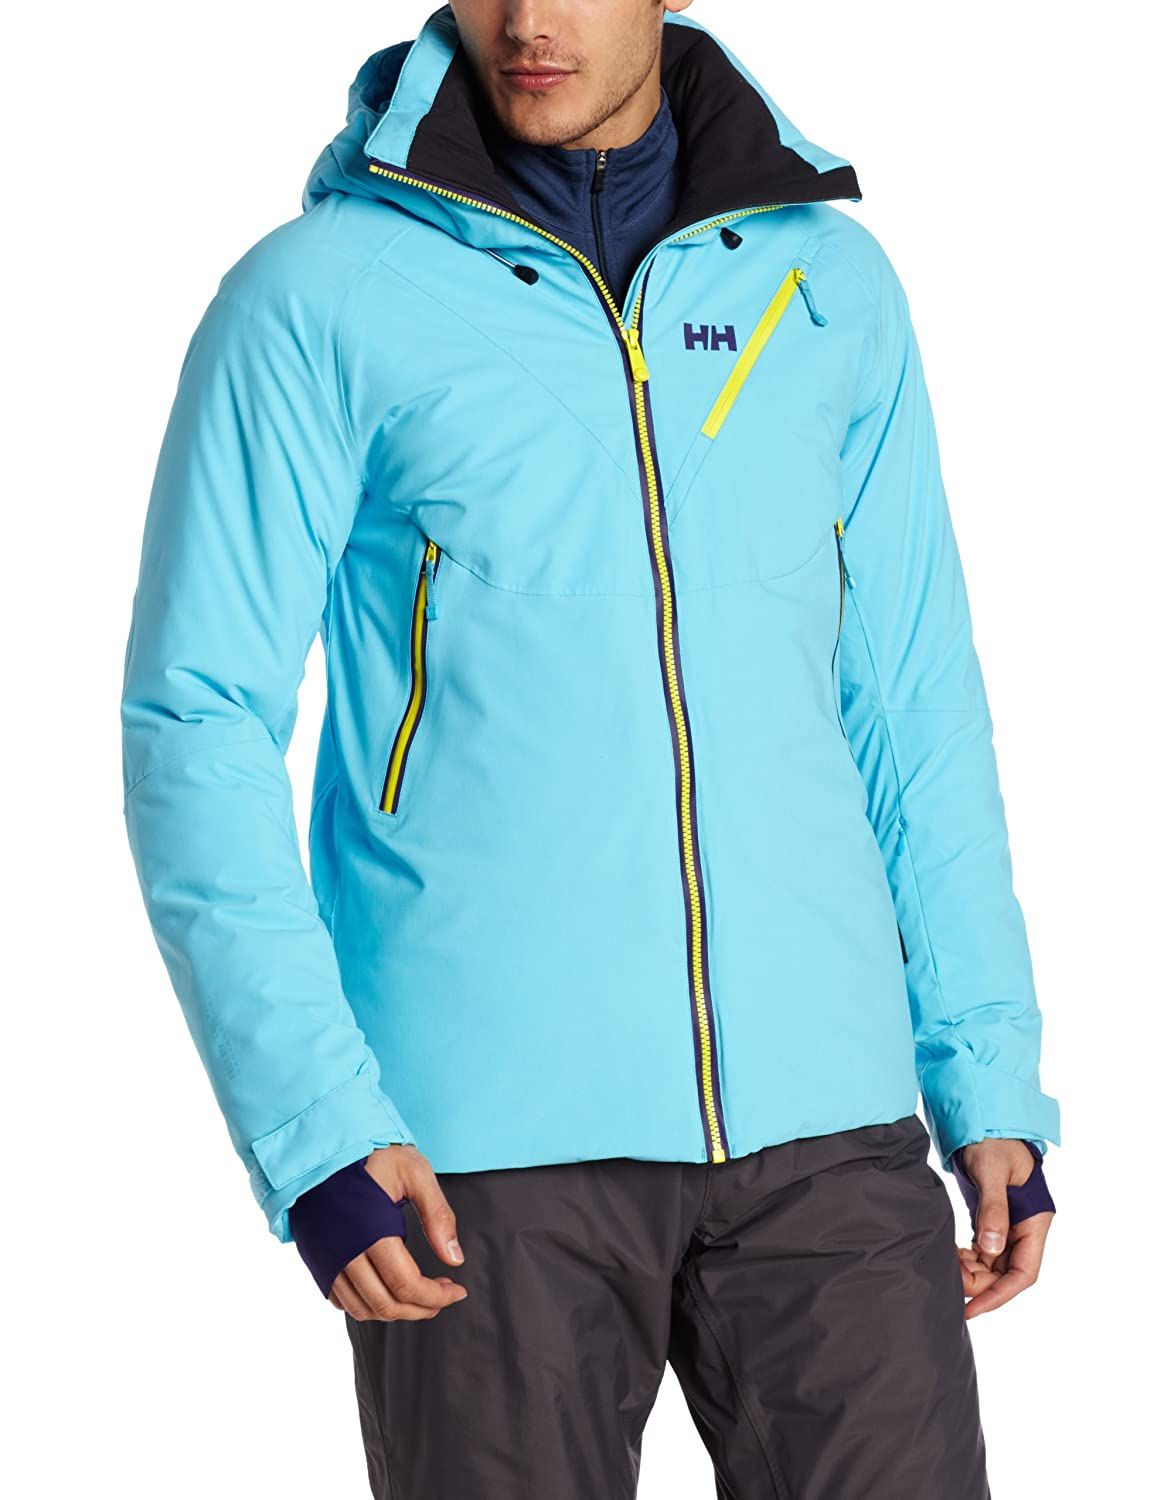 Helly Hansen Herren Skijacke MISSION JACKET